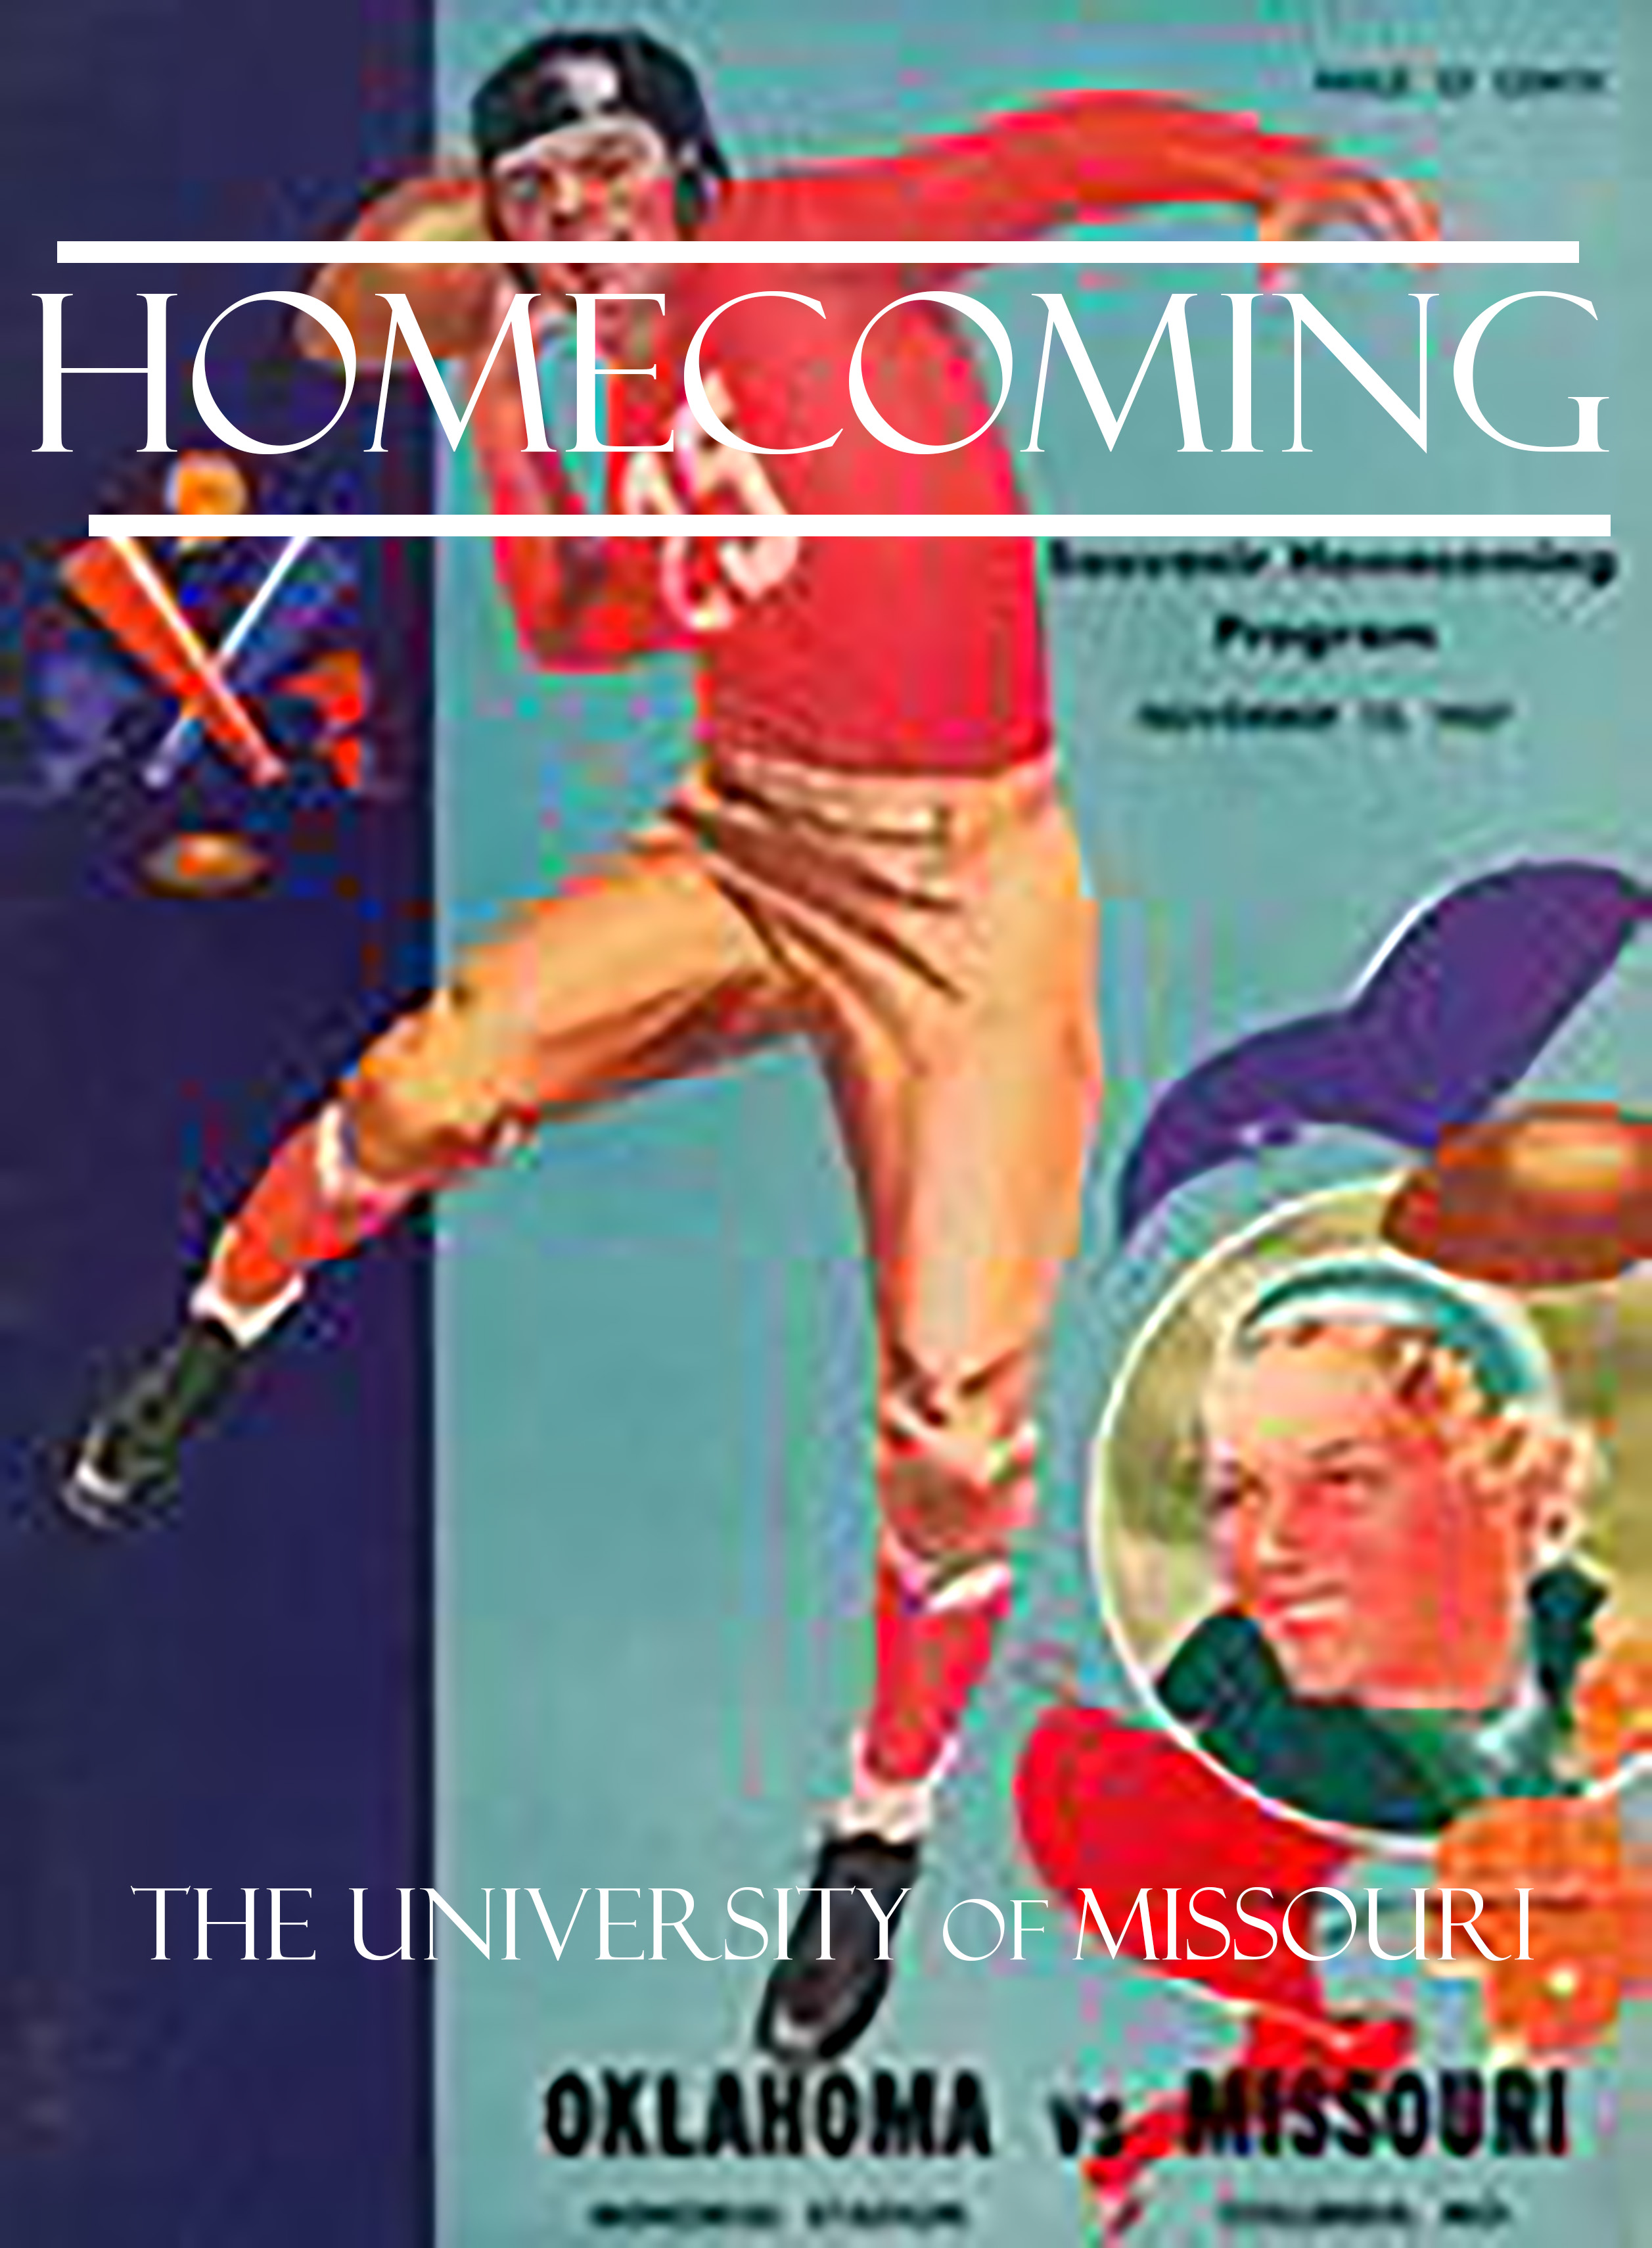 Homecoming at Mizzou (Collection)